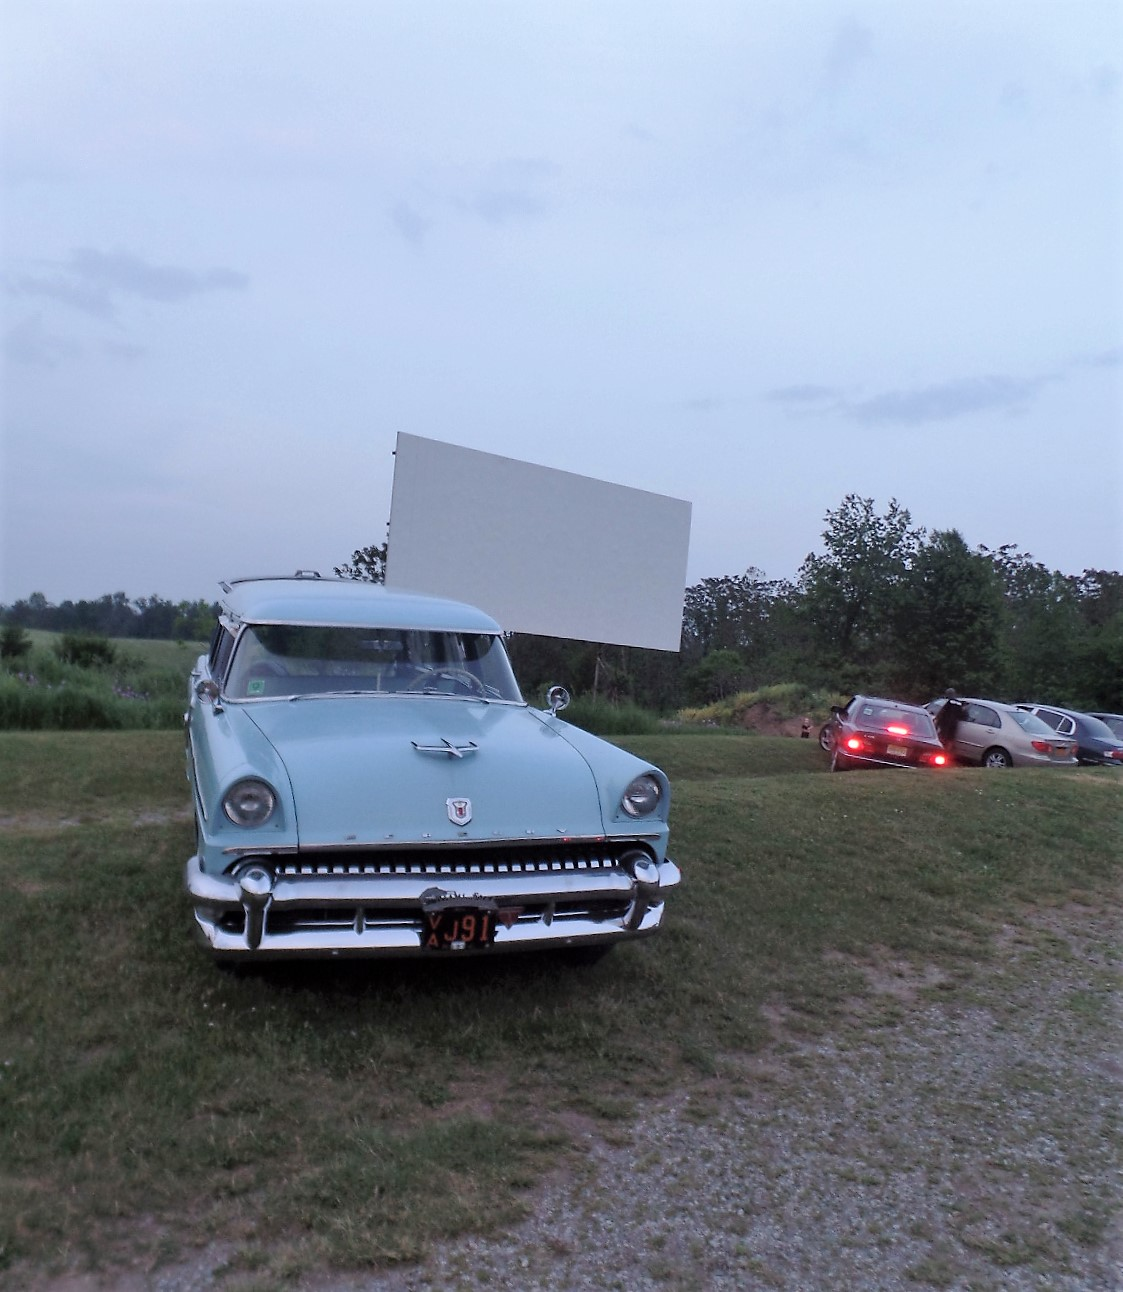 Car at drive-in.